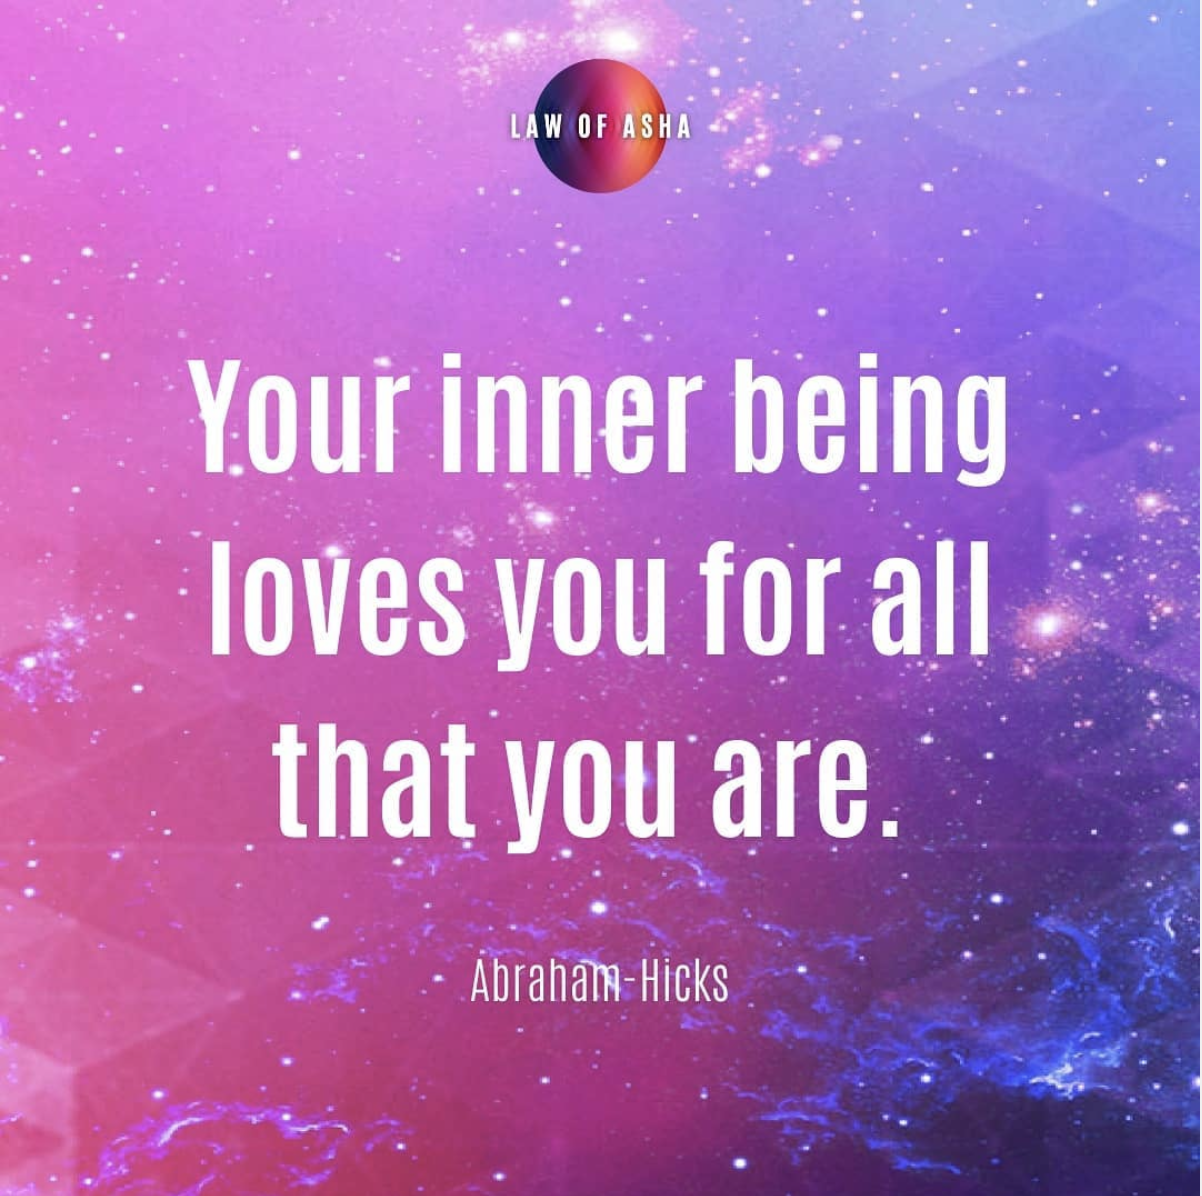 Do you love yourself unconditionally?